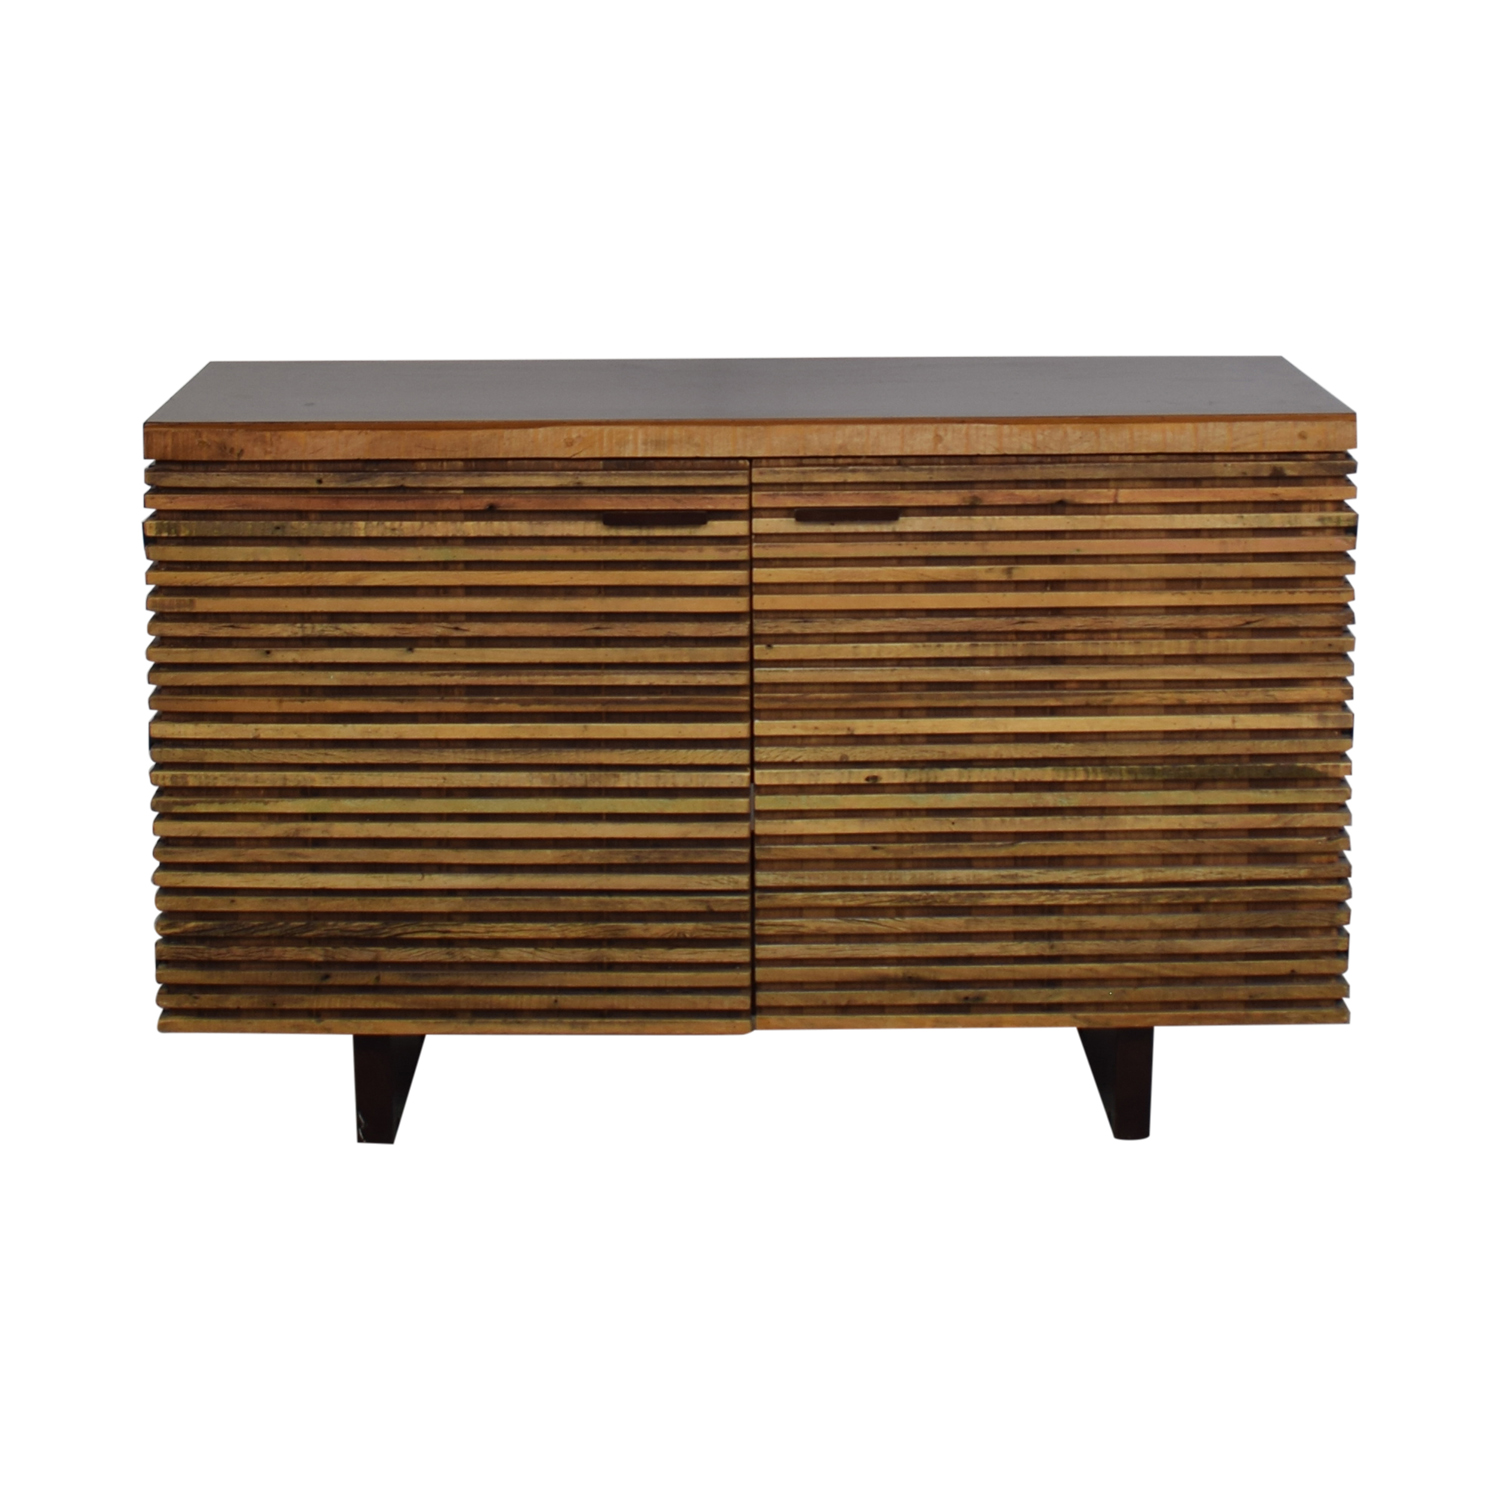 Crate & Barrel Crate & Barrel Paloma Two-Door Credenza nyc